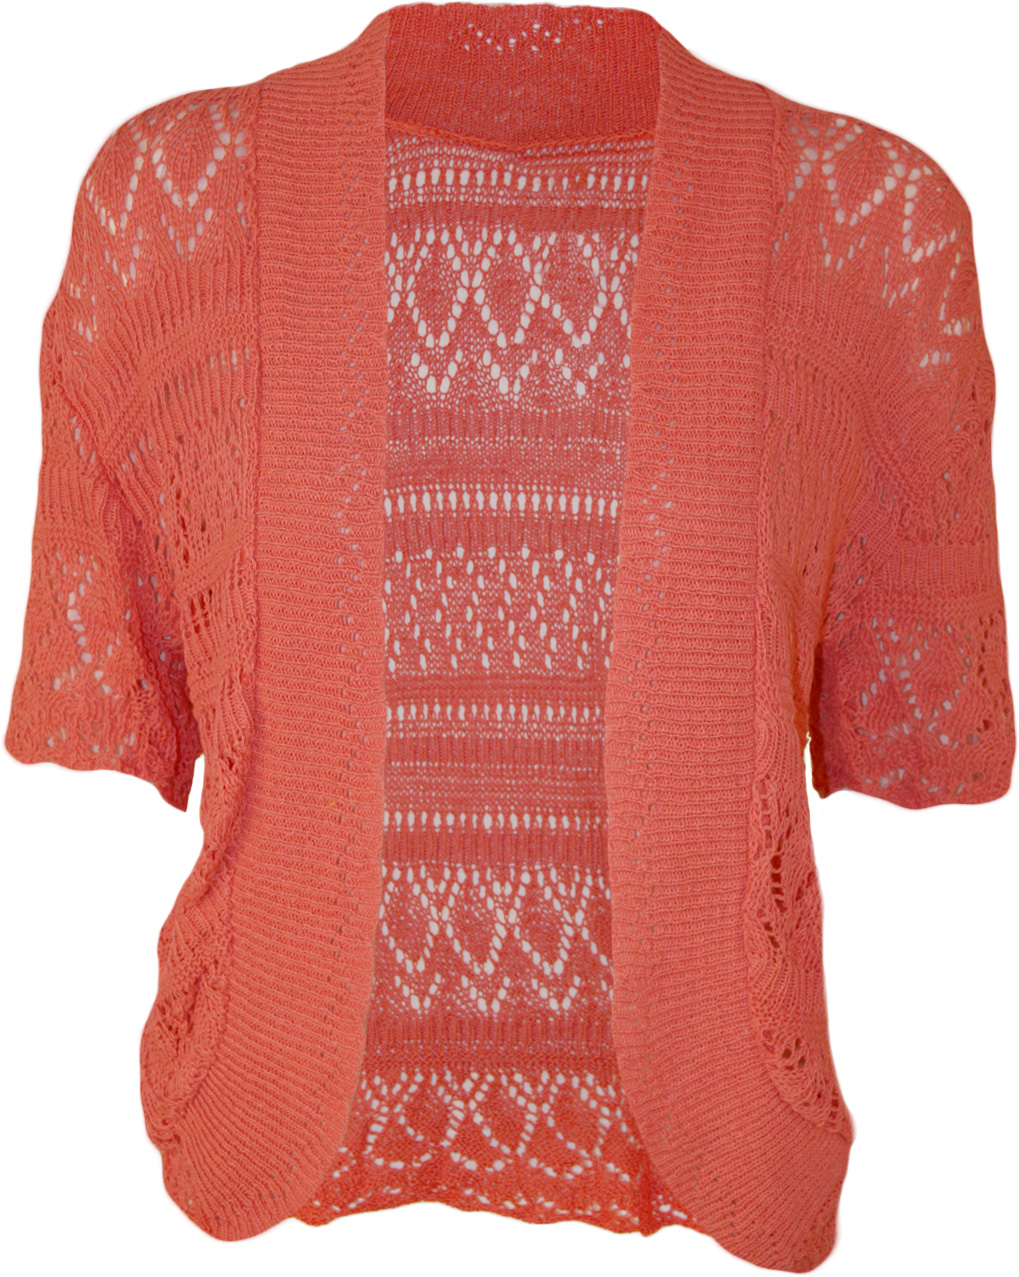 Plus Size Short Sleeve Cardigan Uk - Cardigan With Buttons